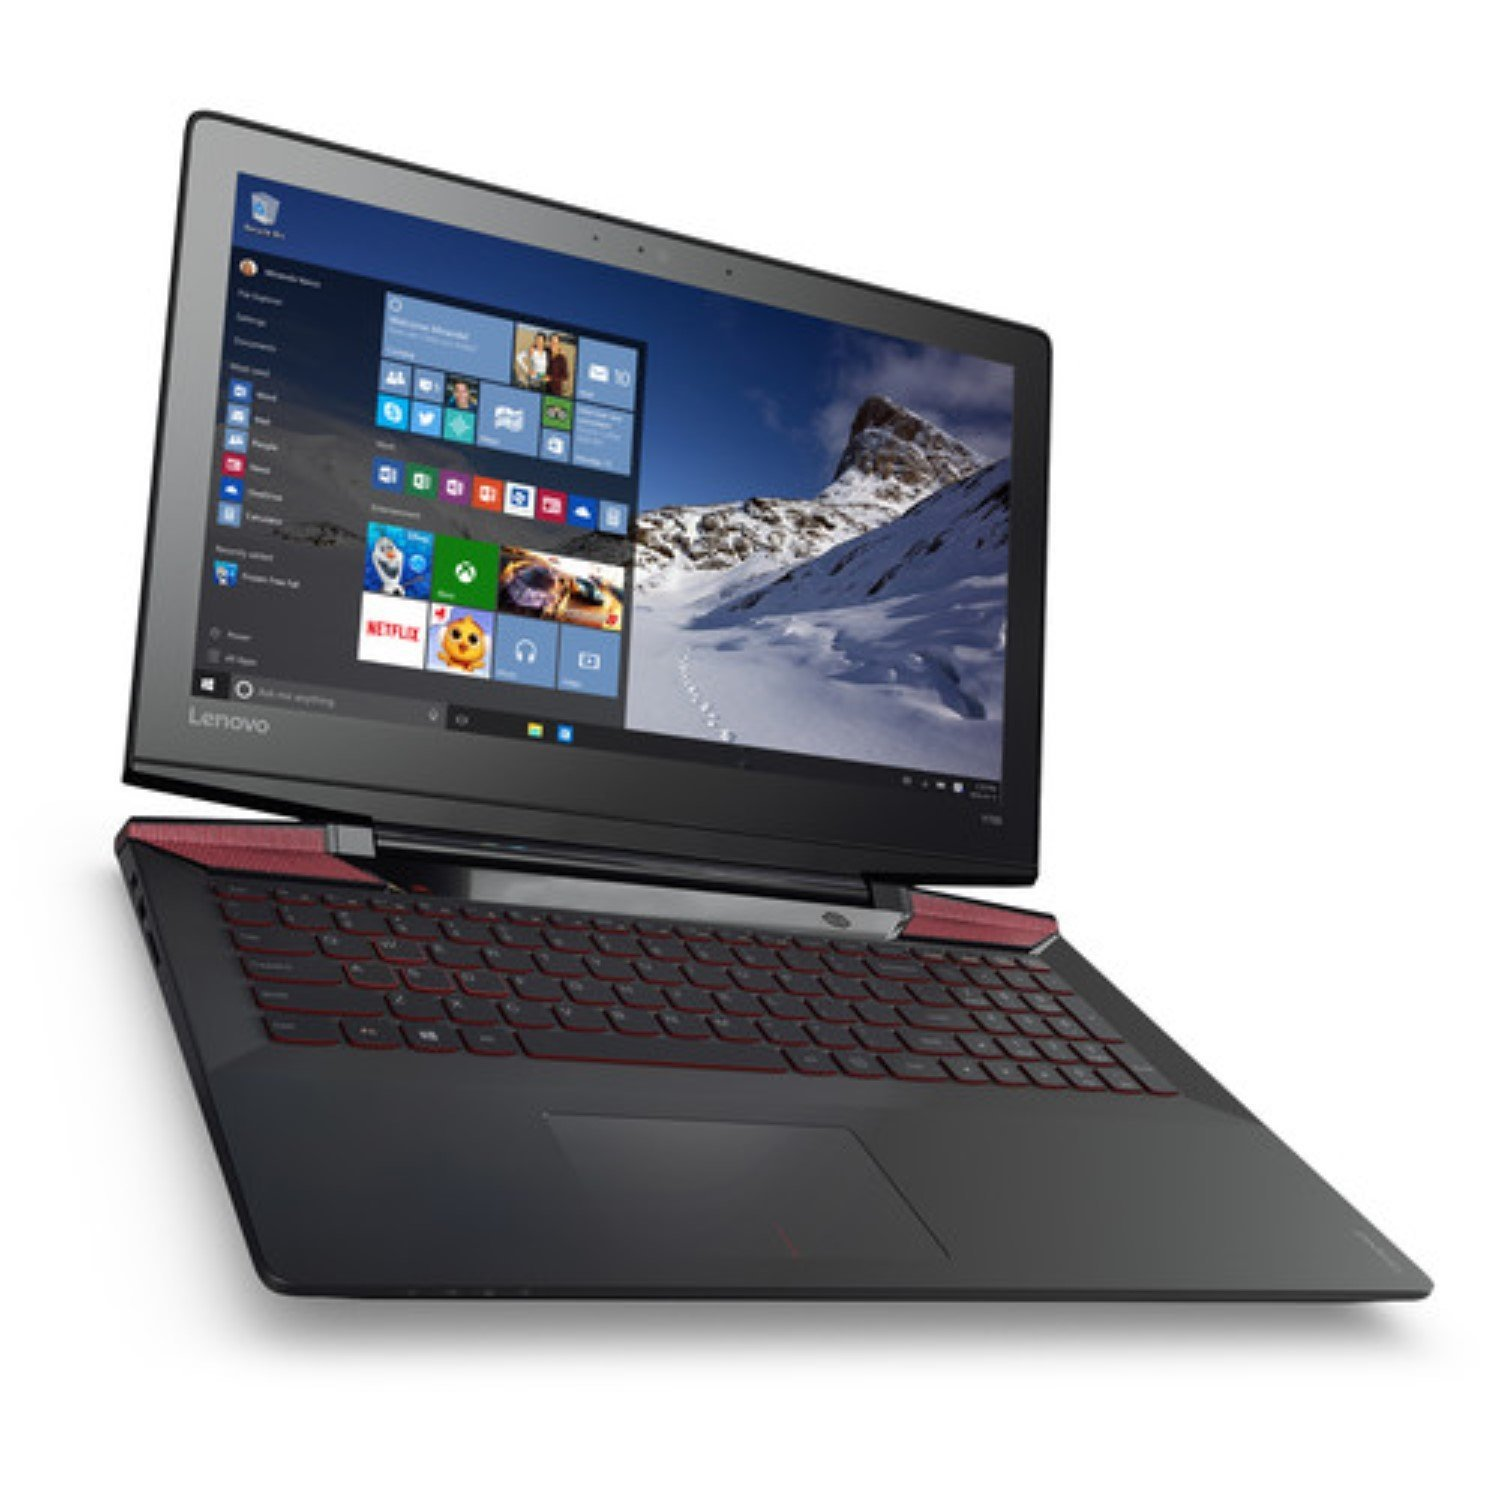 Lenovo Y700 15.6-Inch TouchScreen Full HD Gaming Laptop, 6th Gen Intel Core i7-6700HQ UP to 3.5GHz, 16GB DDR4 Memory, 128GB SSD + 1TB Hard Drive, 4GB GeForce GTX 960M Graphics, Windows 10